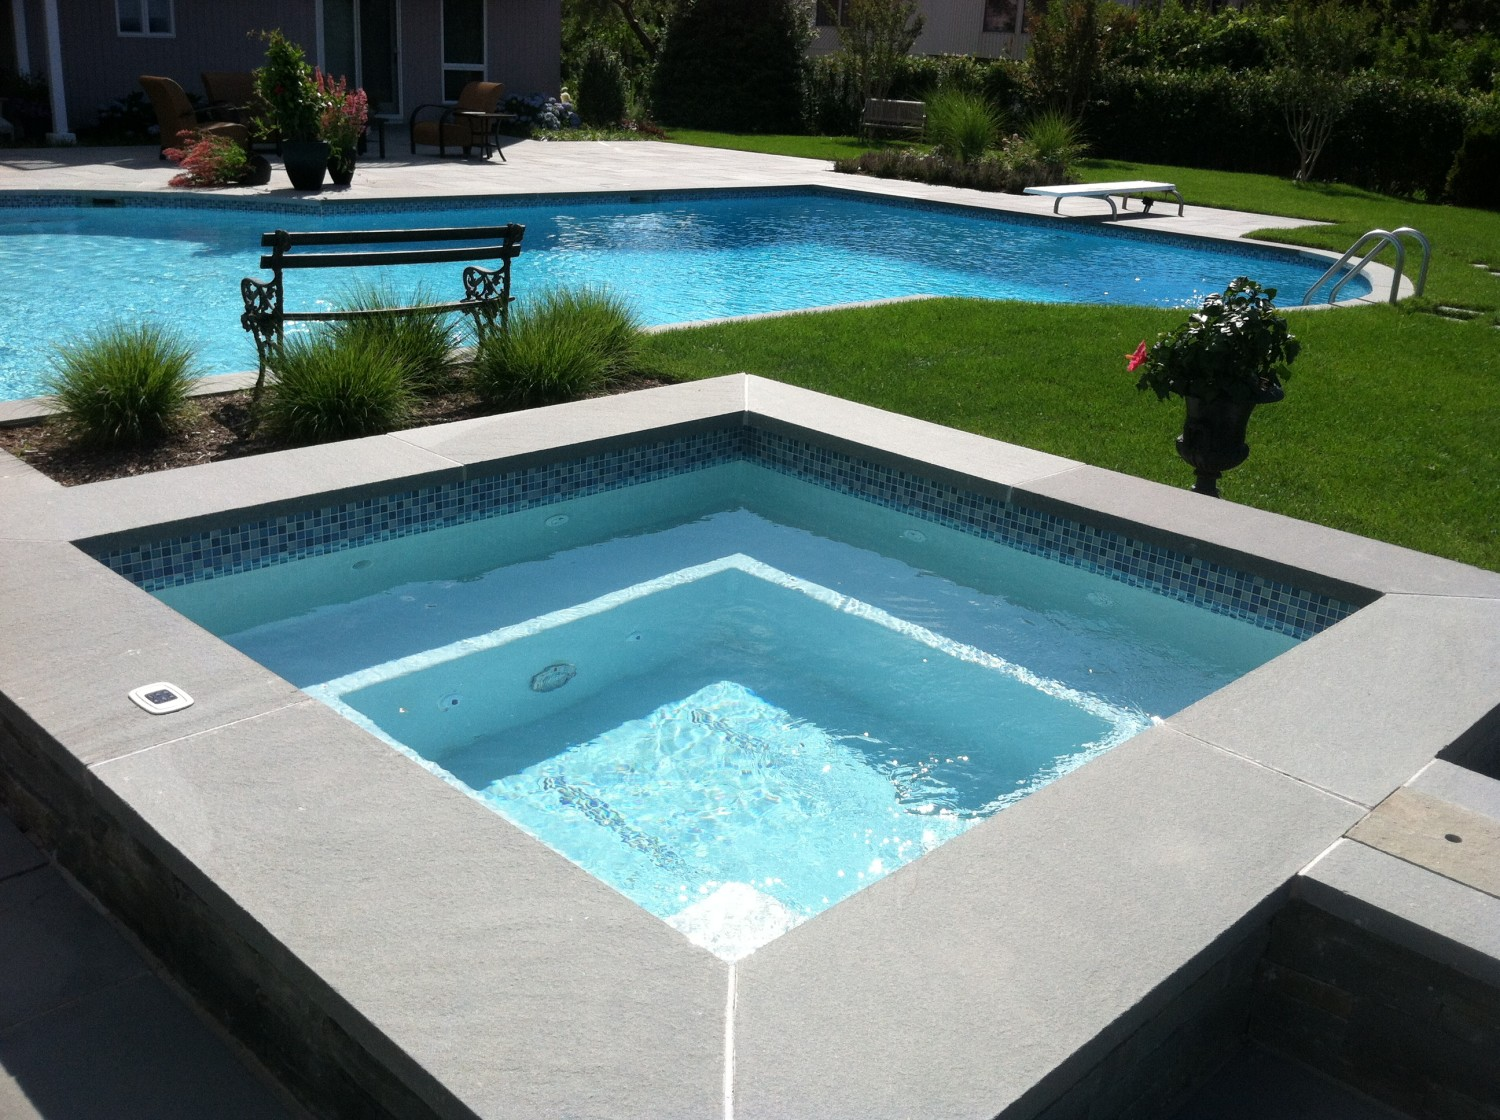 Patio Pool Renovation Spa Addition In Port Jeff Harbor